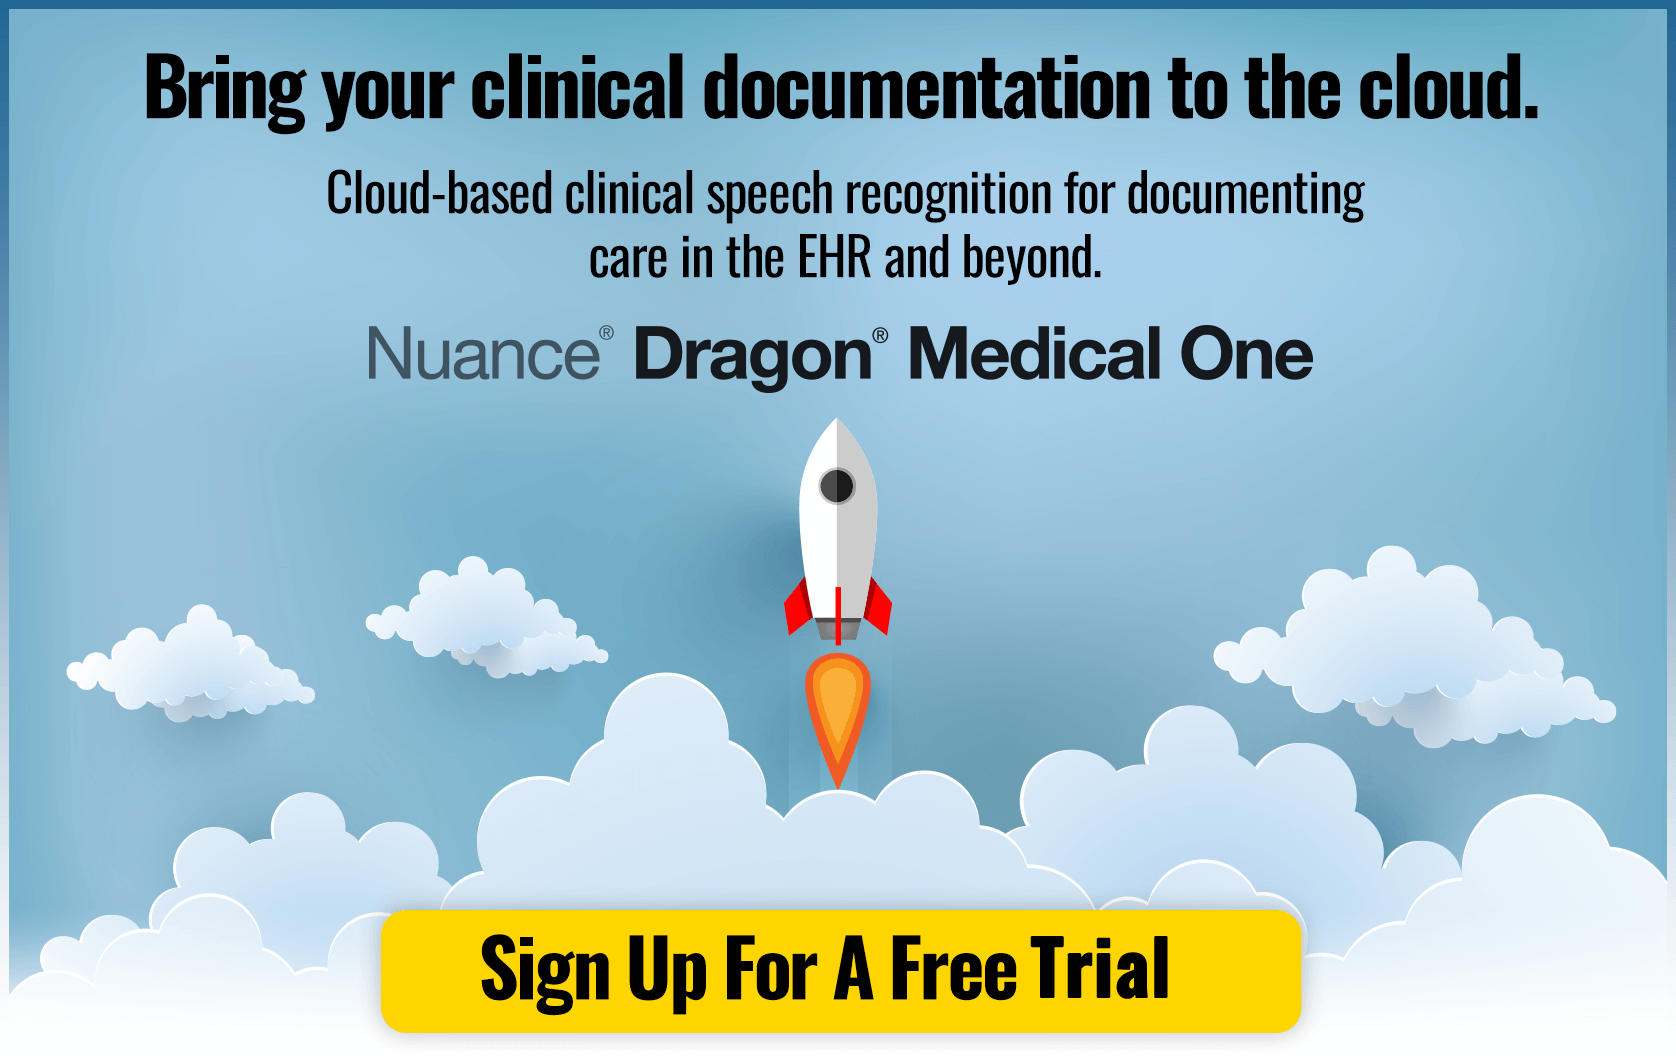 Bring your clinical documentation to the cloud. Cloud-based clinical speech recognition for documenting care in the EHR and beyond. Dragon Medical One